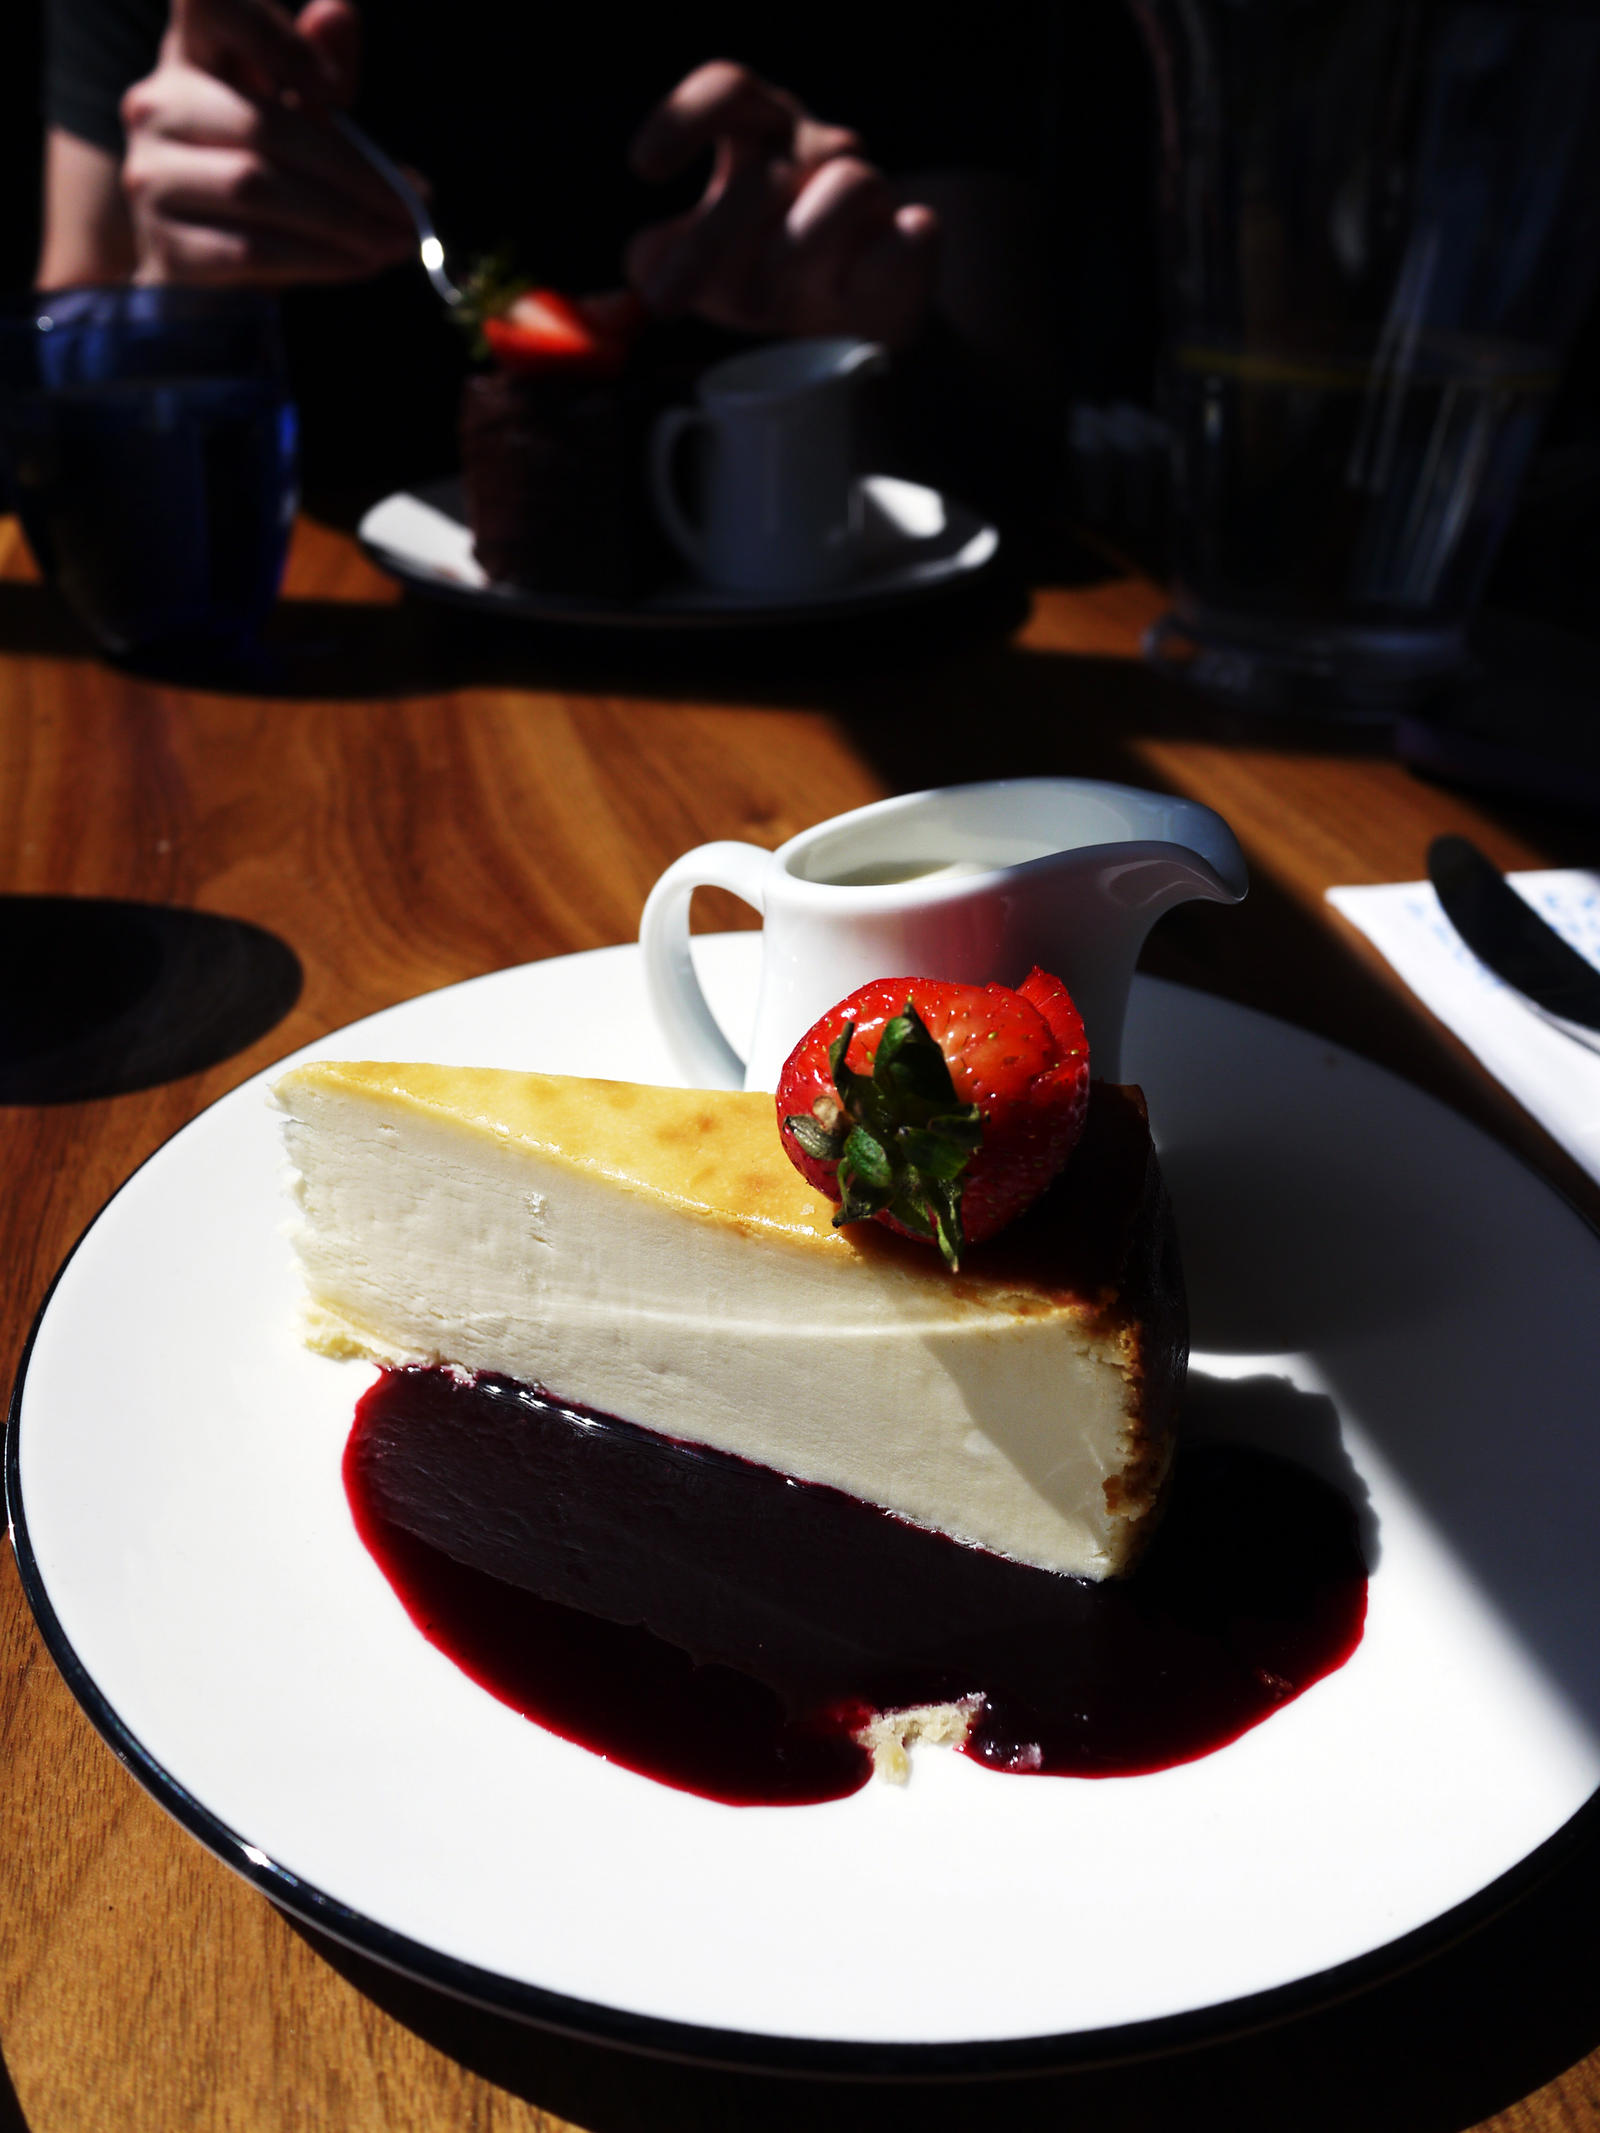 Cheescake to die for by Ginkoftw